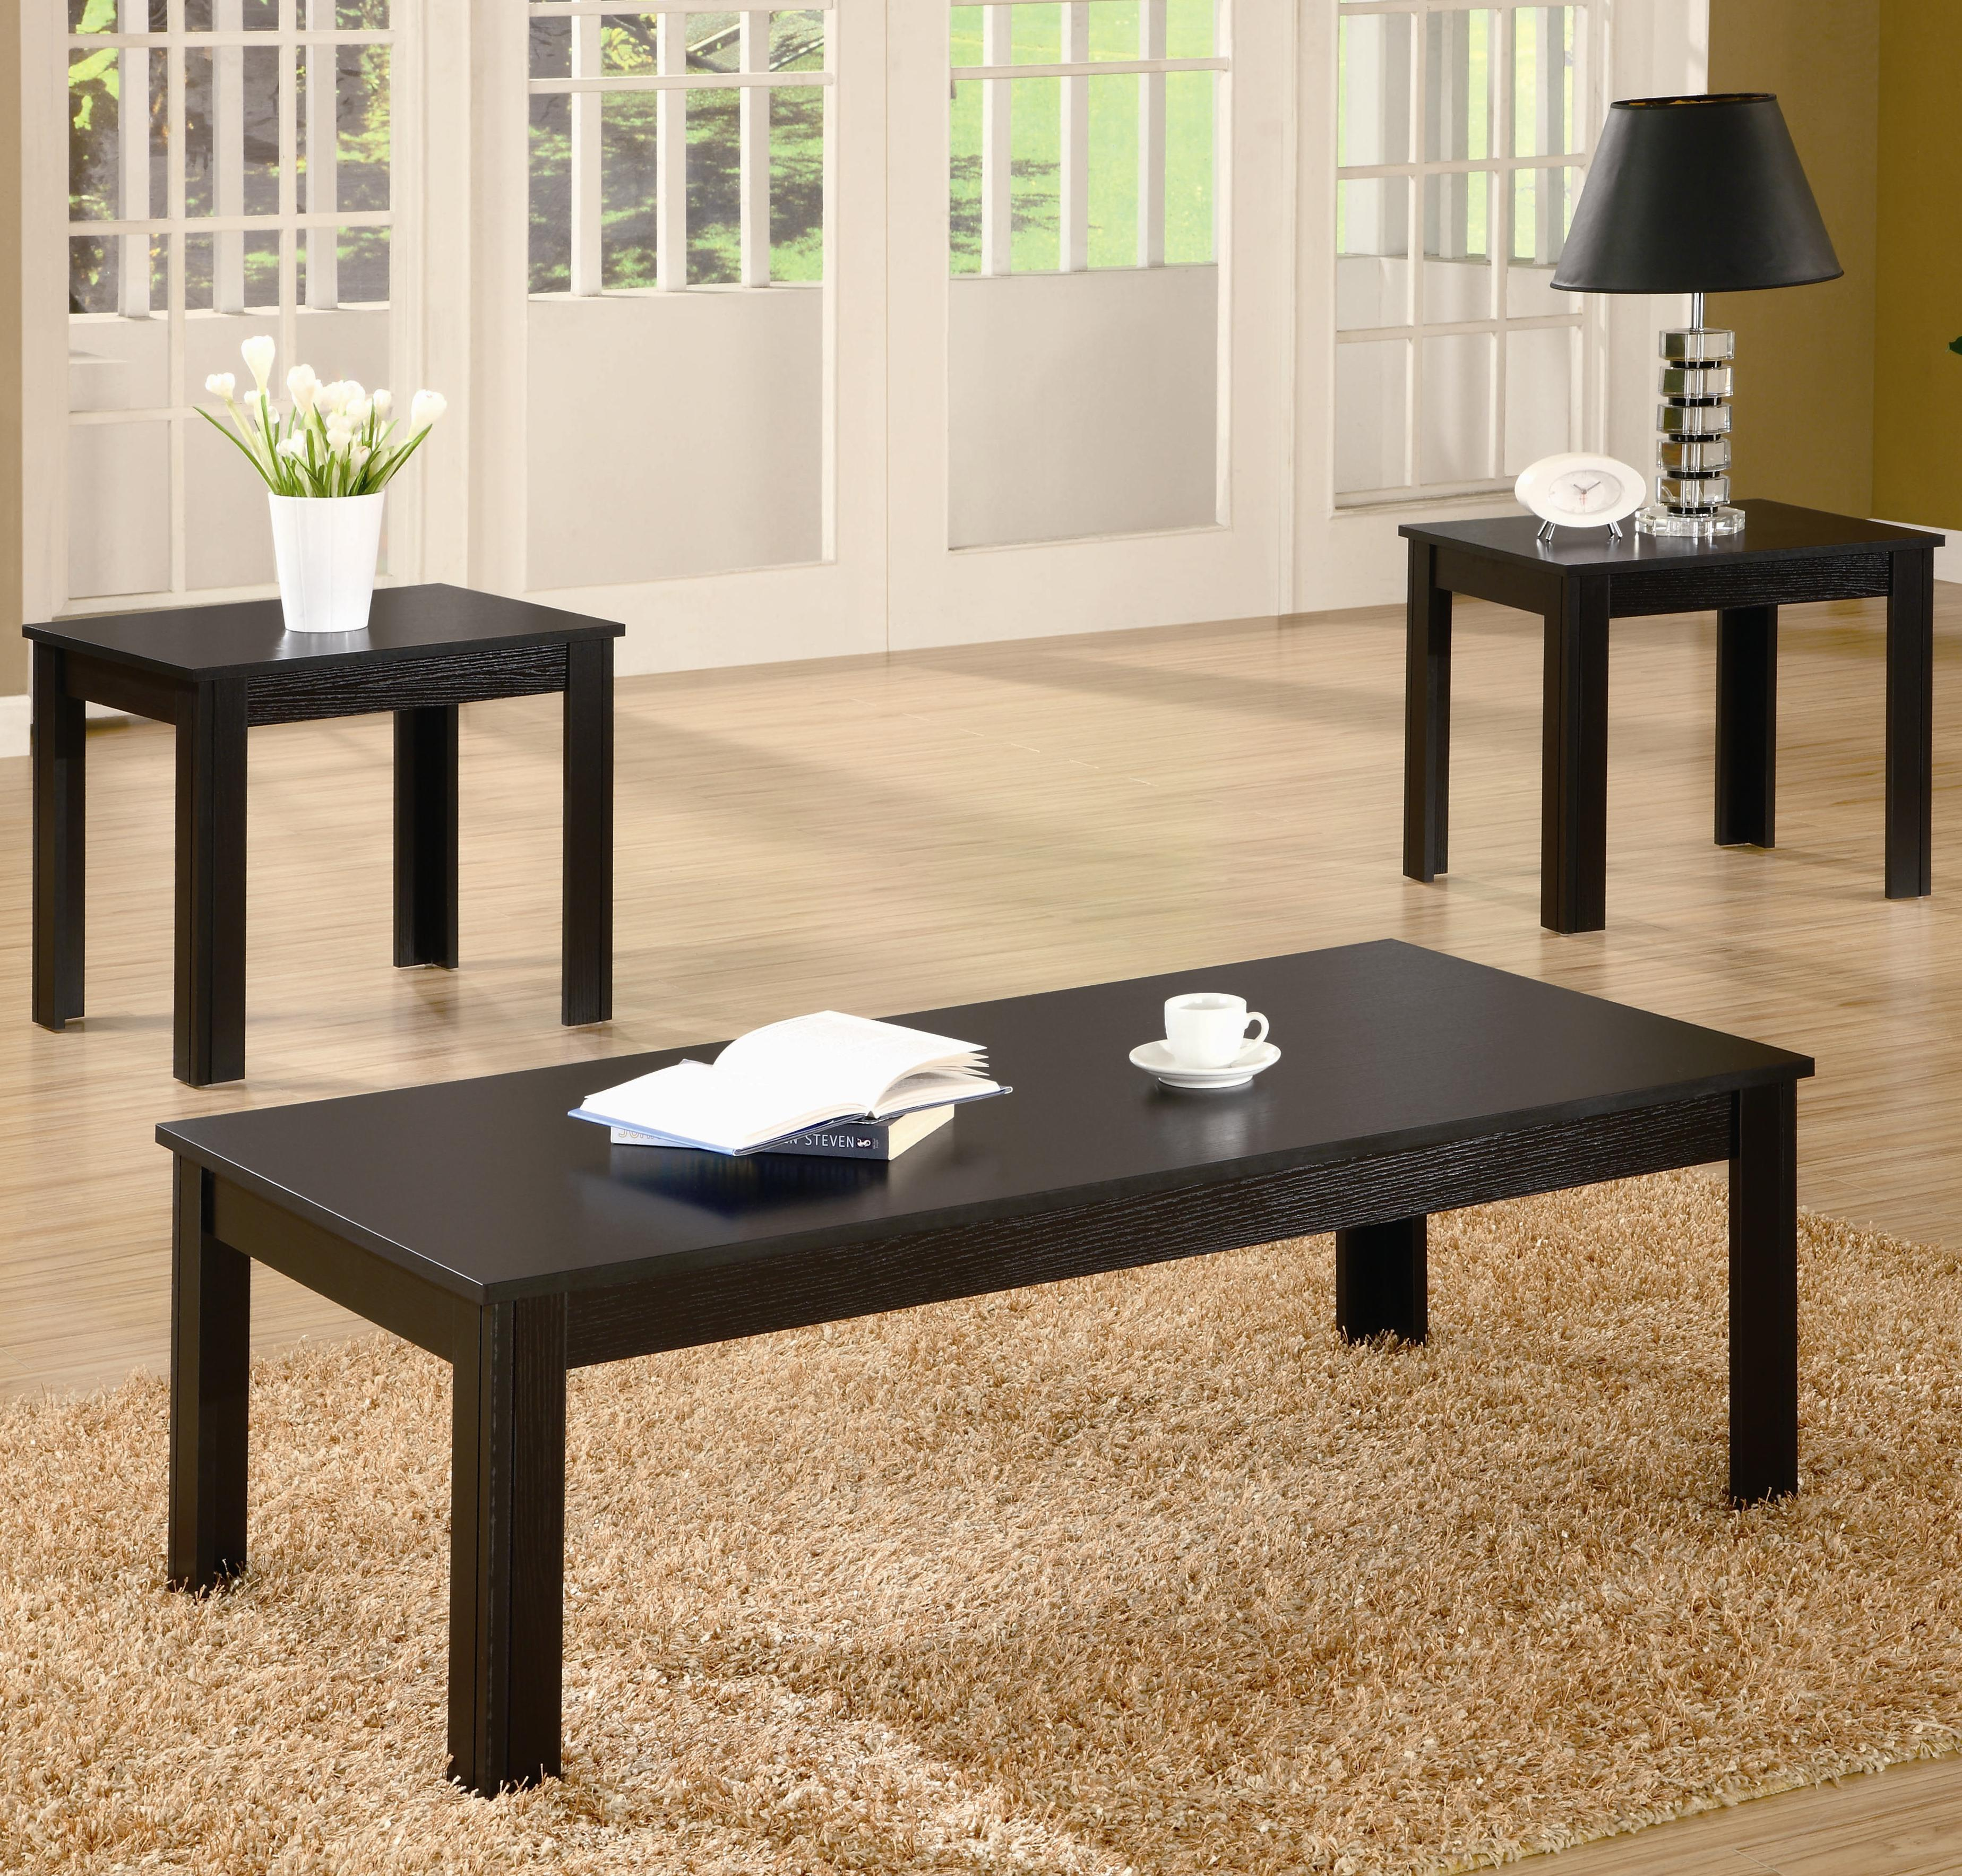 3 piece occasional table set affordable portables